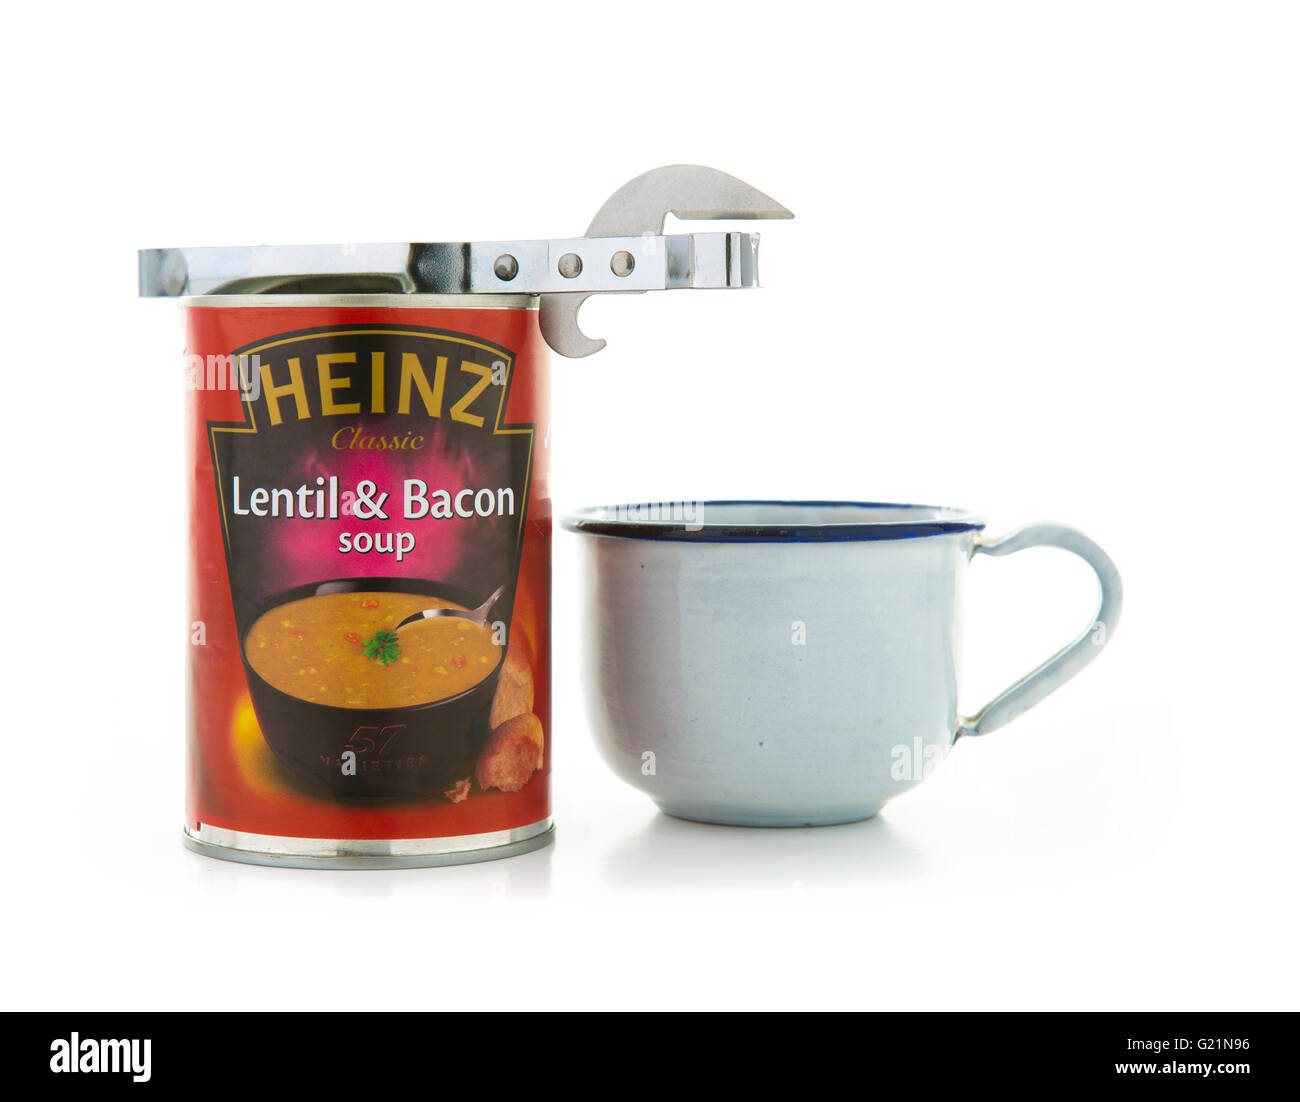 Heinz lentil and Bacon soup with a tin opener and cup on a white background - Stock Image